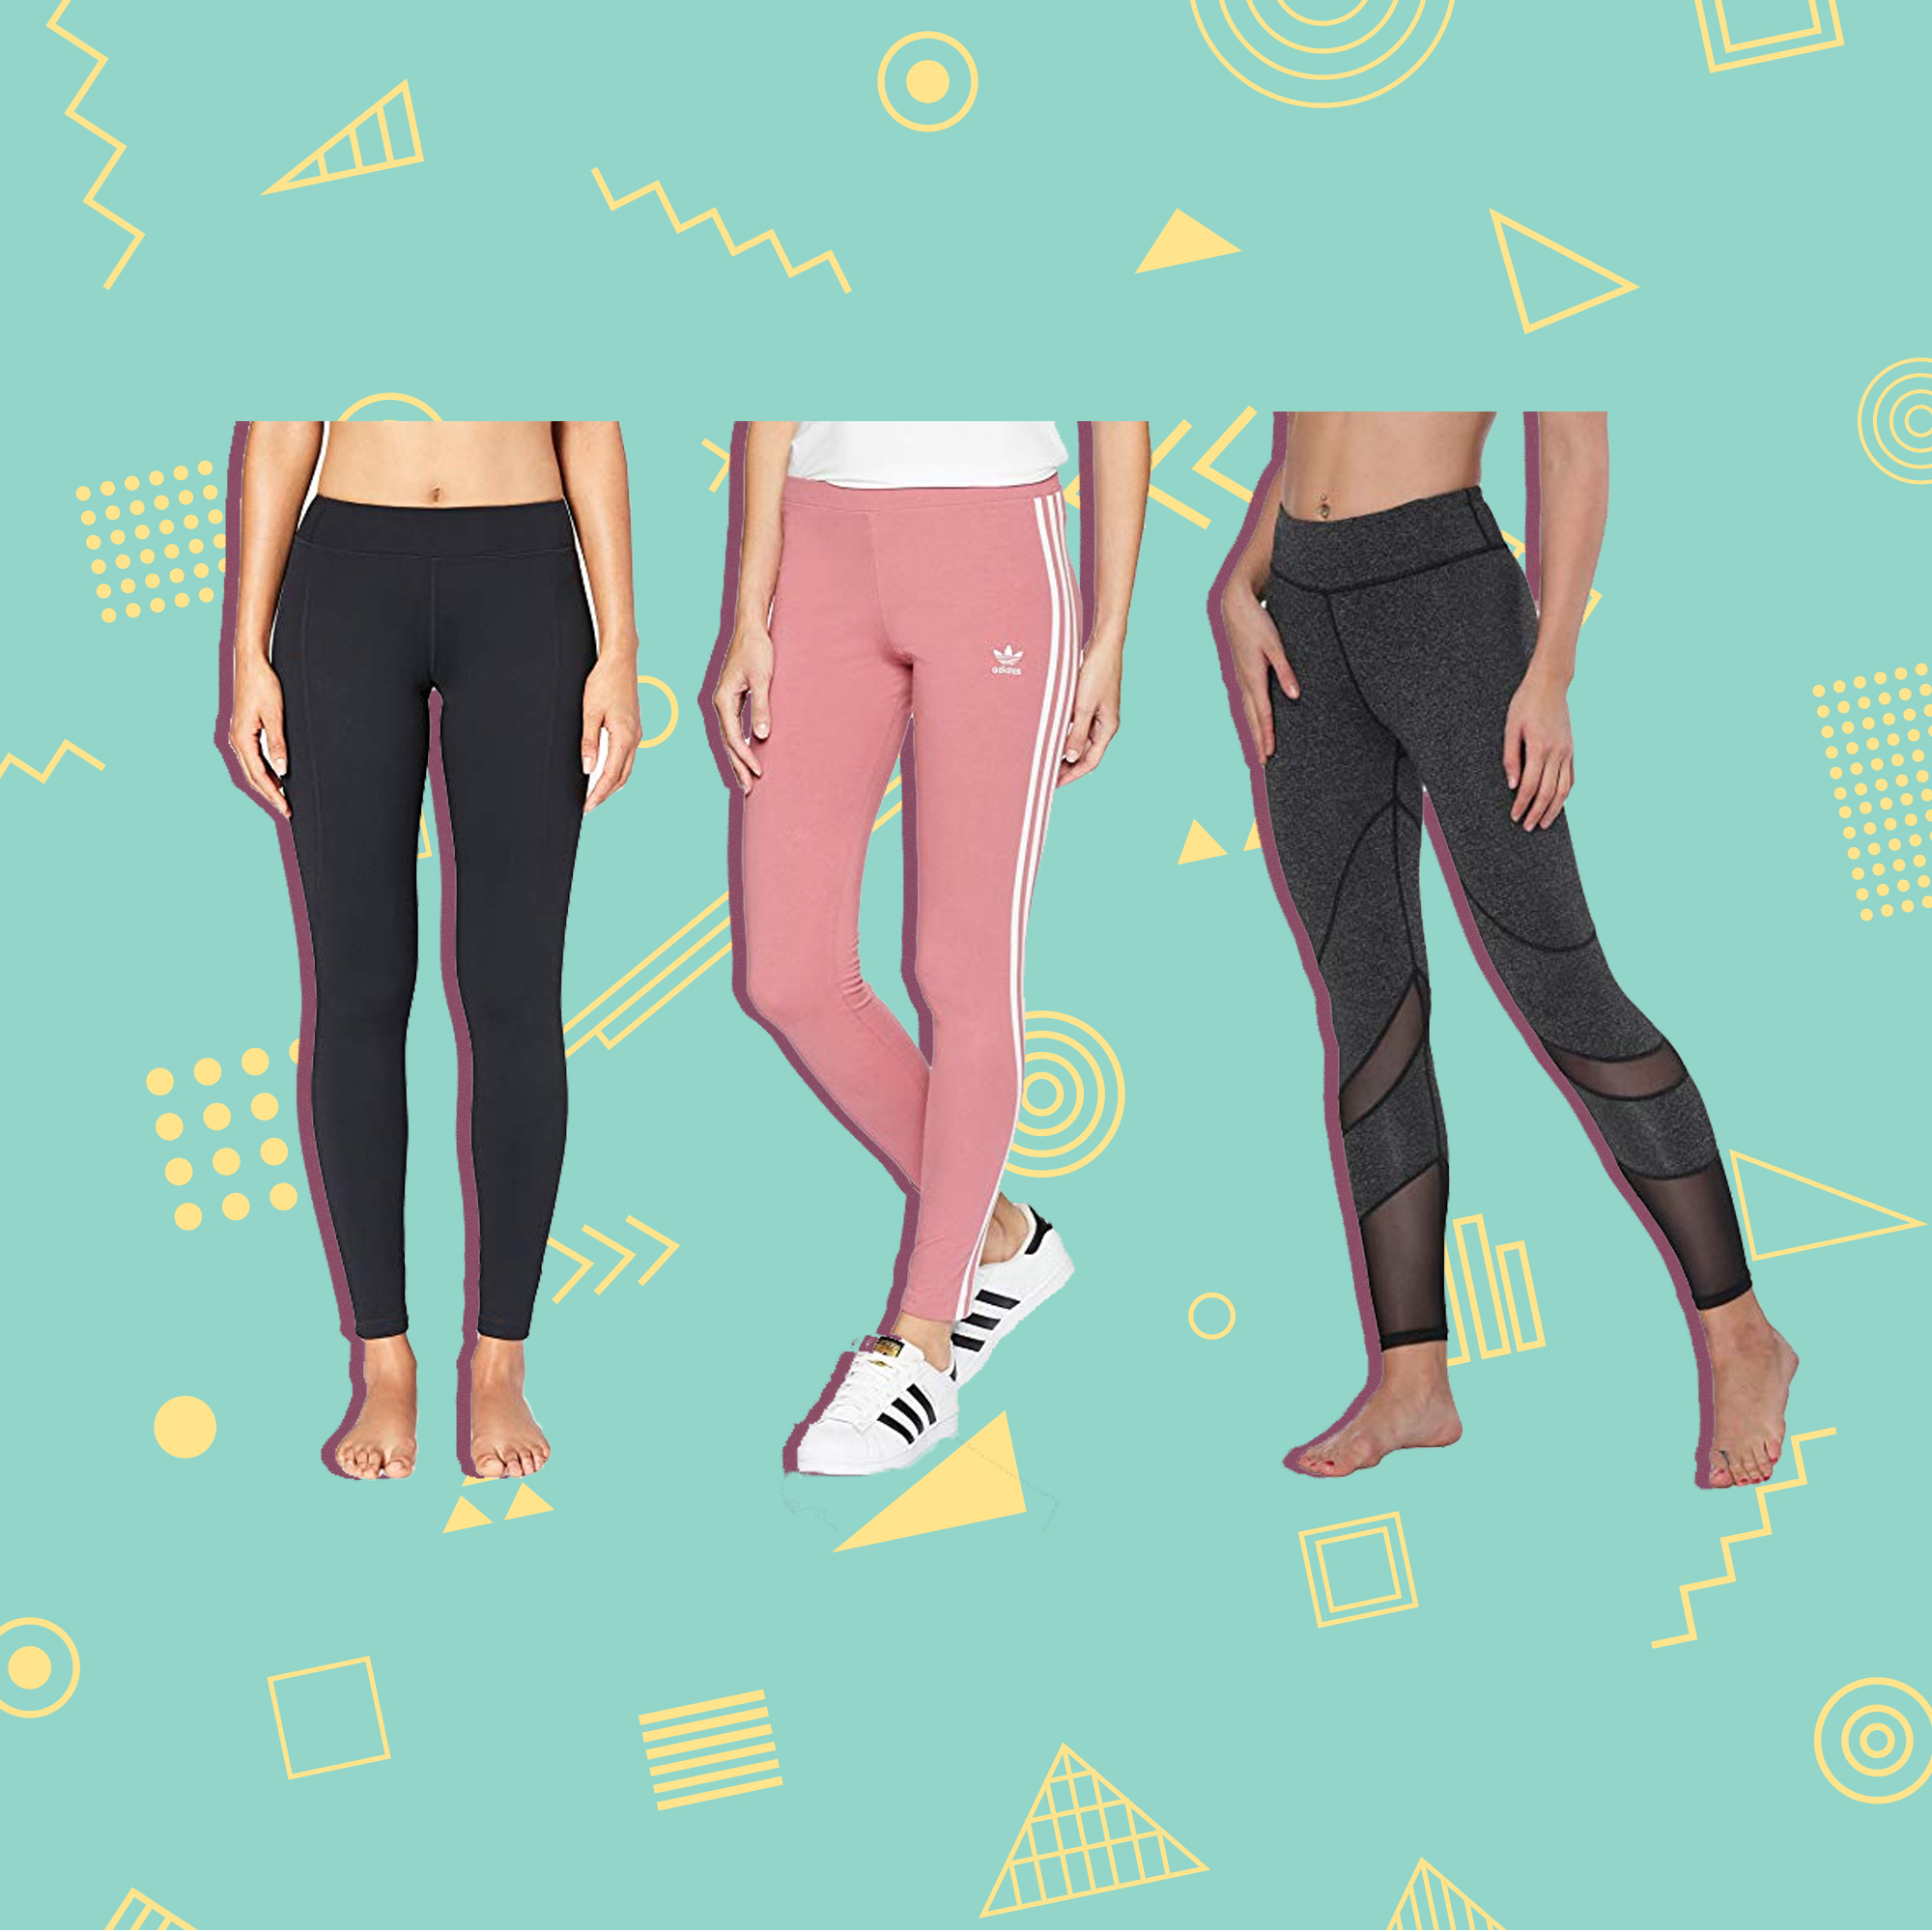 300a9ccfcf24fe The 7 Best Leggings You Can Buy on Amazon